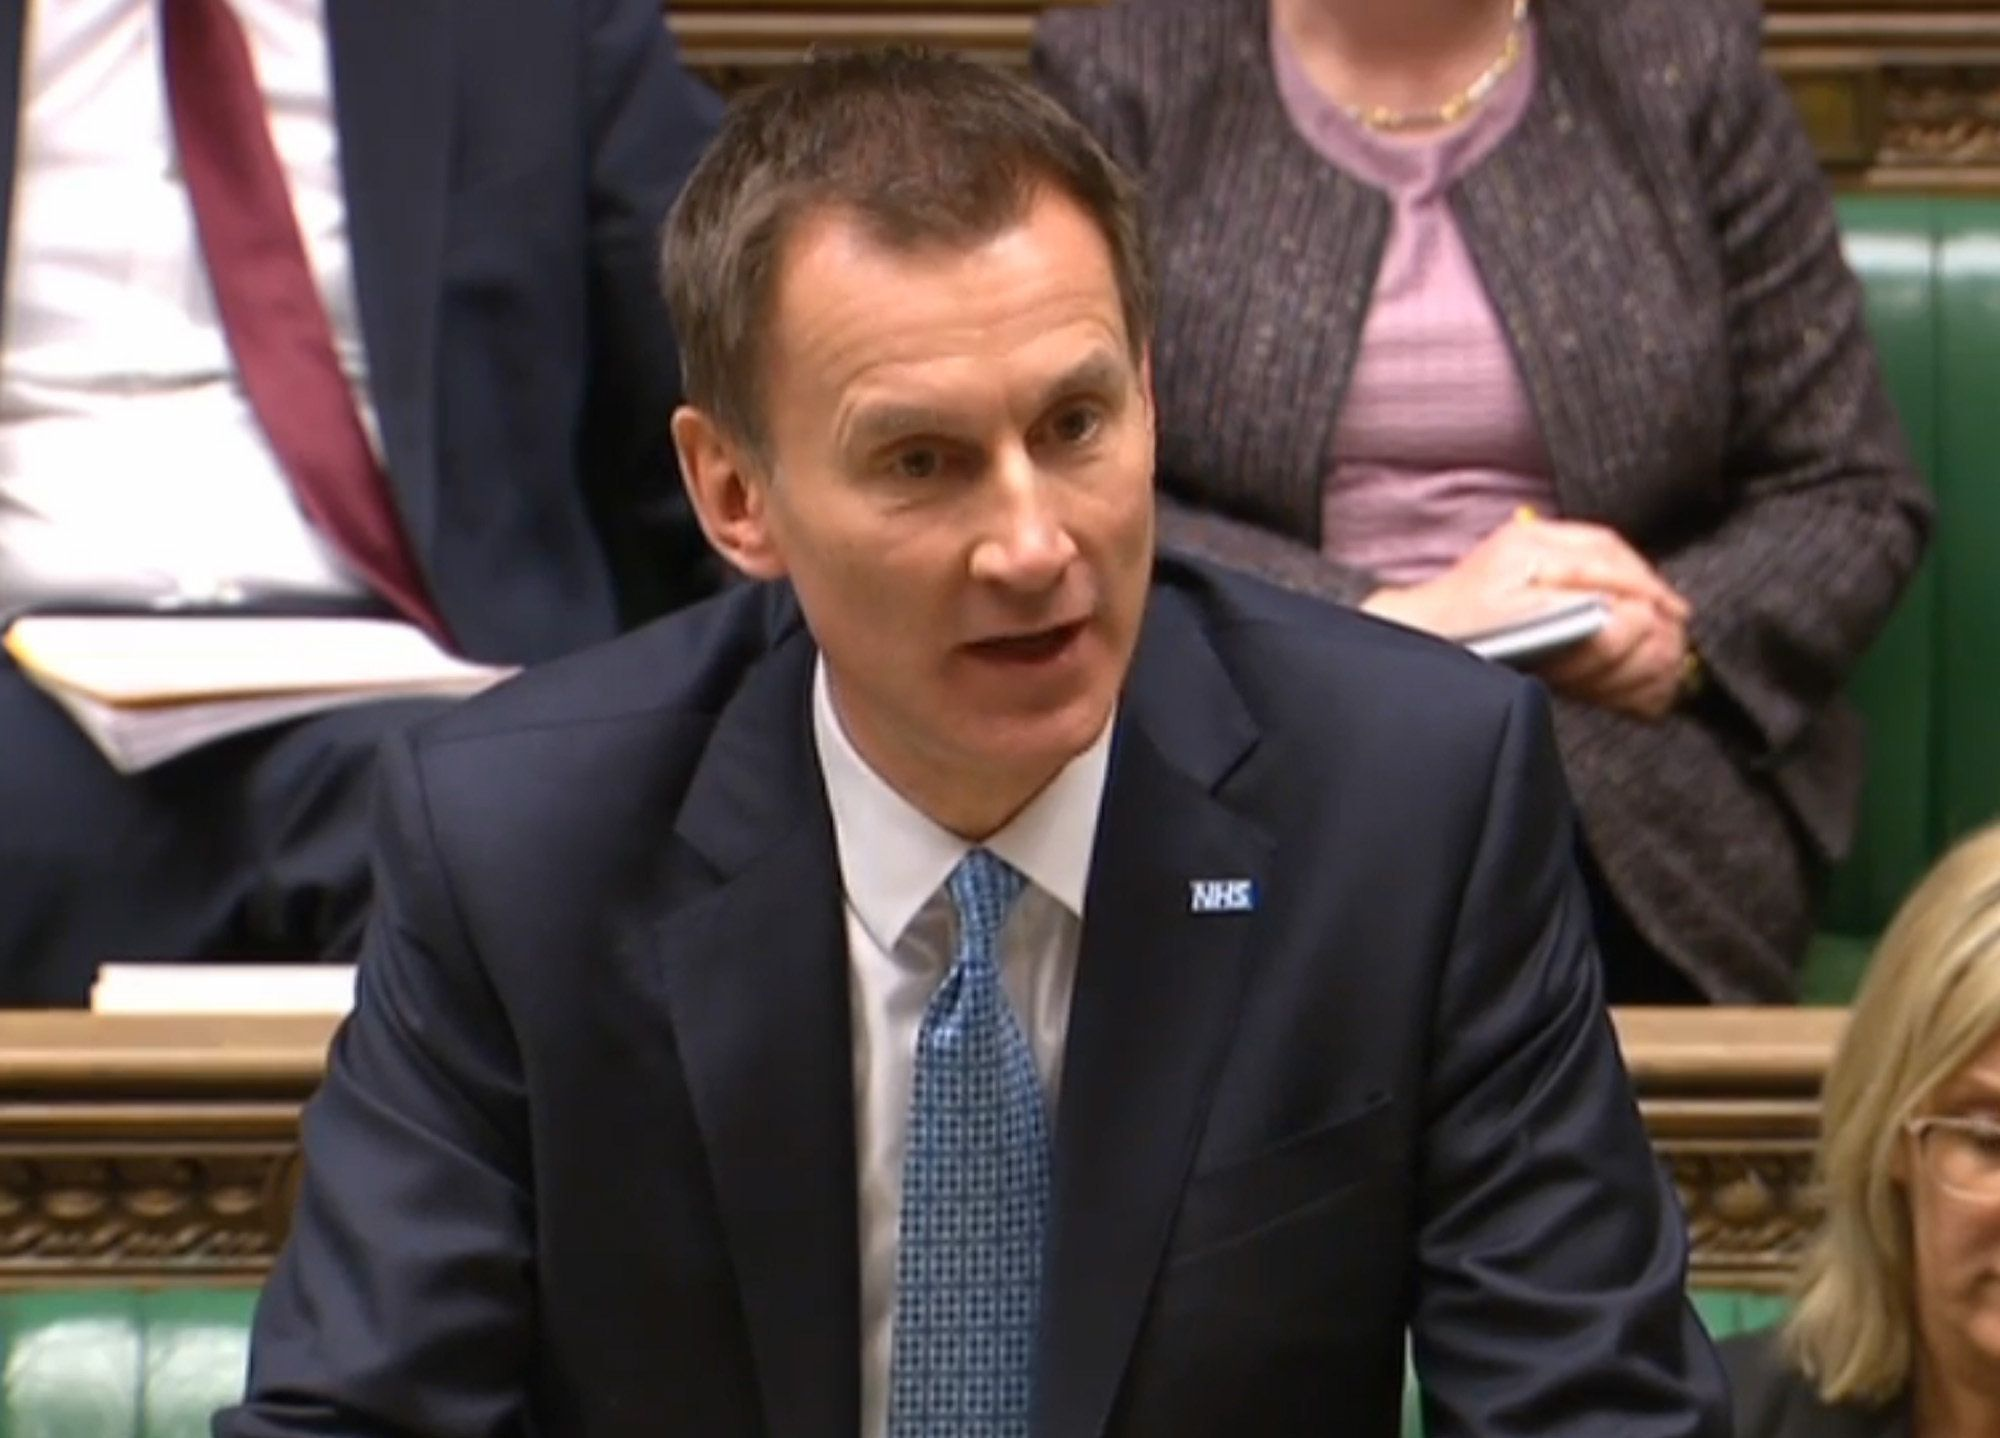 Jeremy Hunt Defends Non-Medical Staff Running Breast Cancer Screening Failure